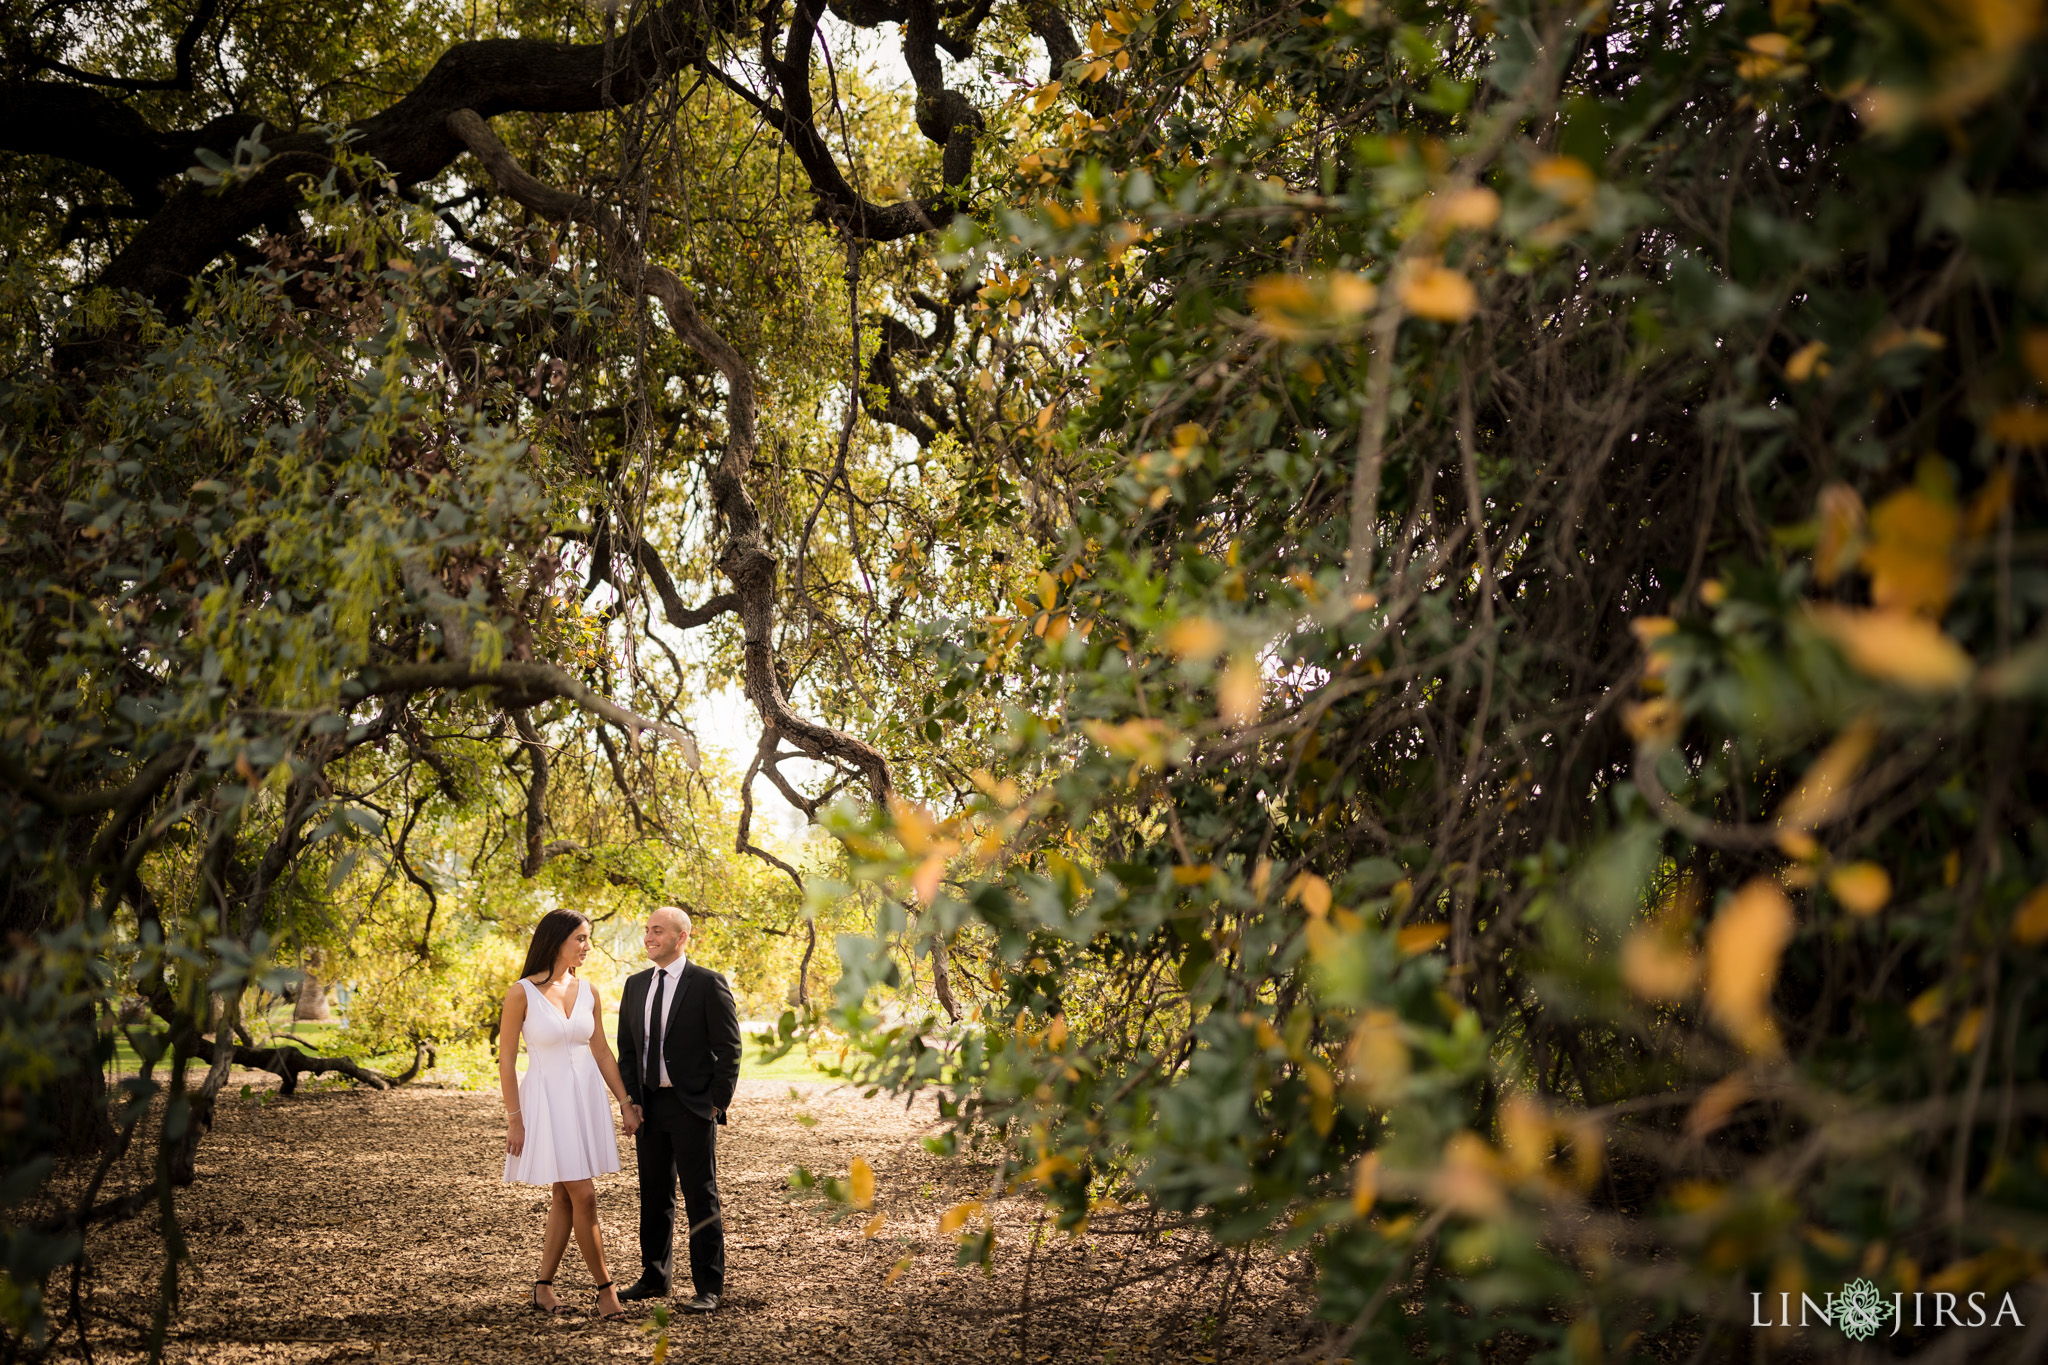 04-Los-angeles-arboretum-engagement-photography